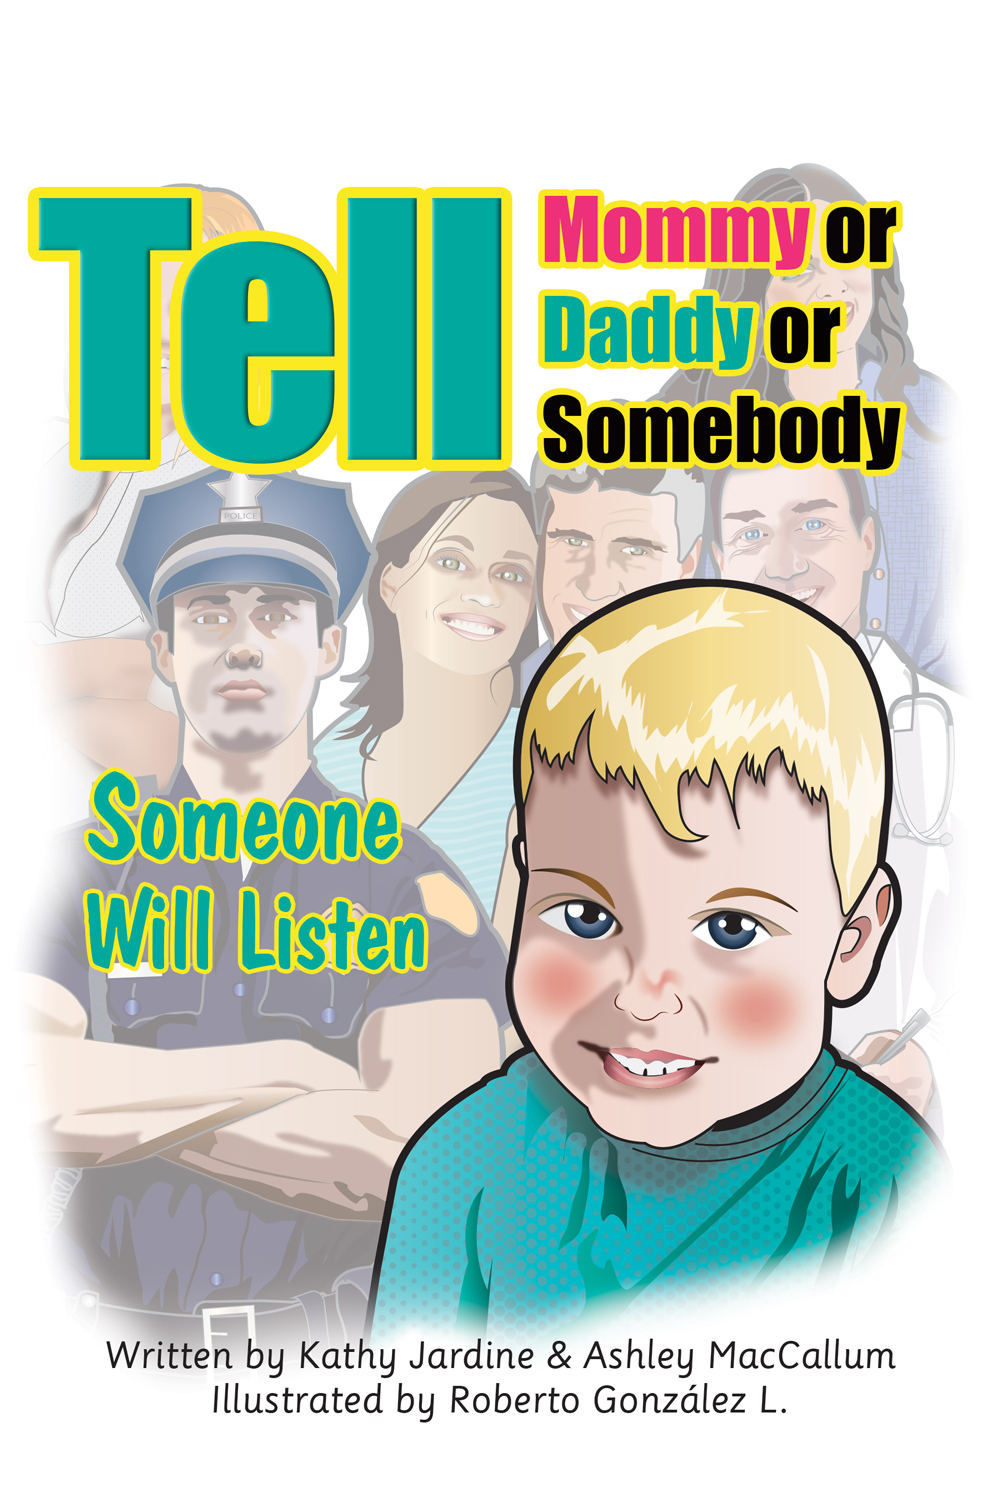 Tell Mommy or Daddy or Somebody